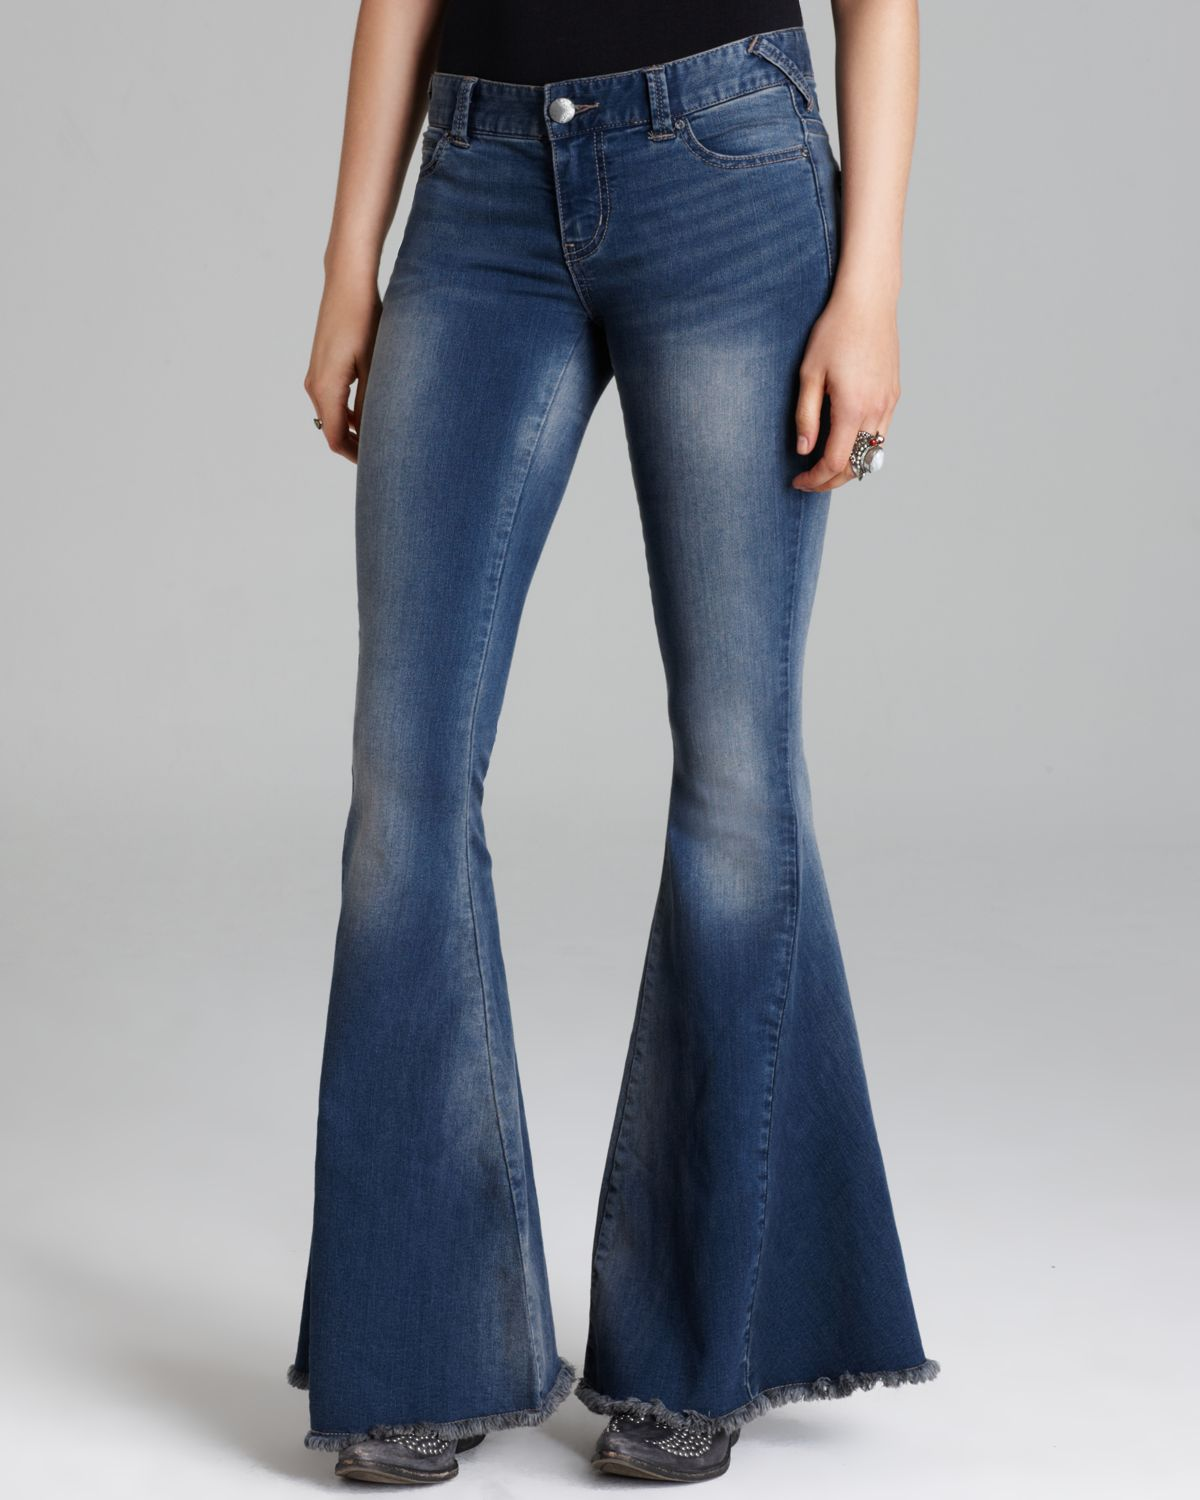 Free People Jeans Stretch Denim Super Flare in Oslo in ...